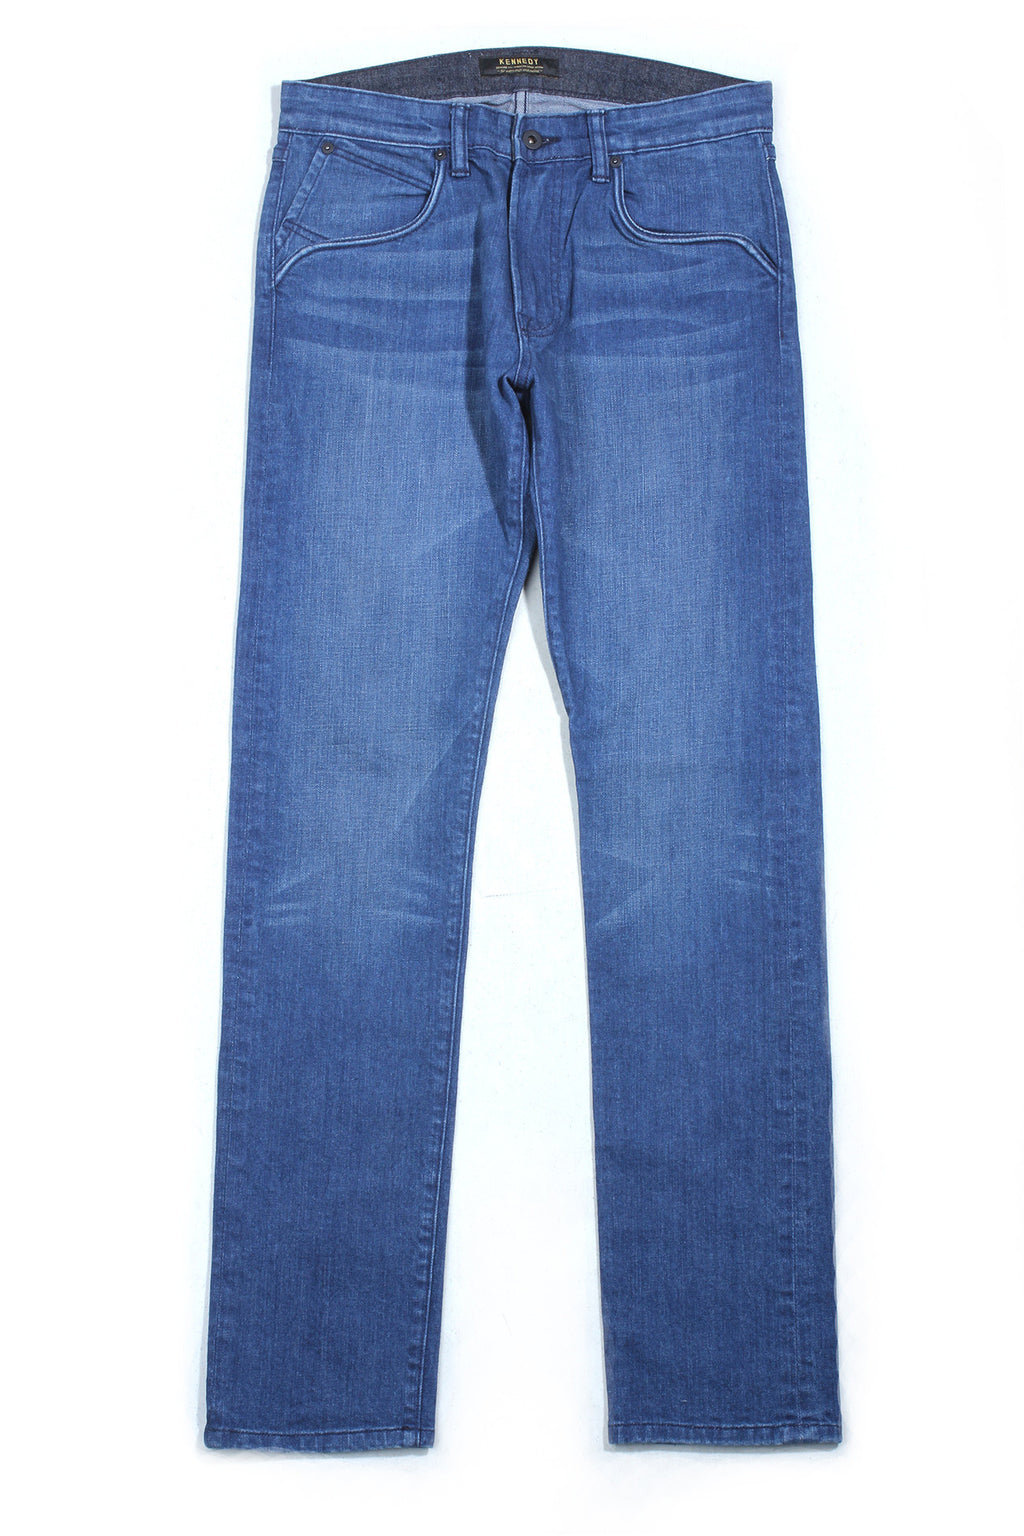 Kennedy Denim Z-Line Pants Pacific Blue Pants Ascent Wear - 1